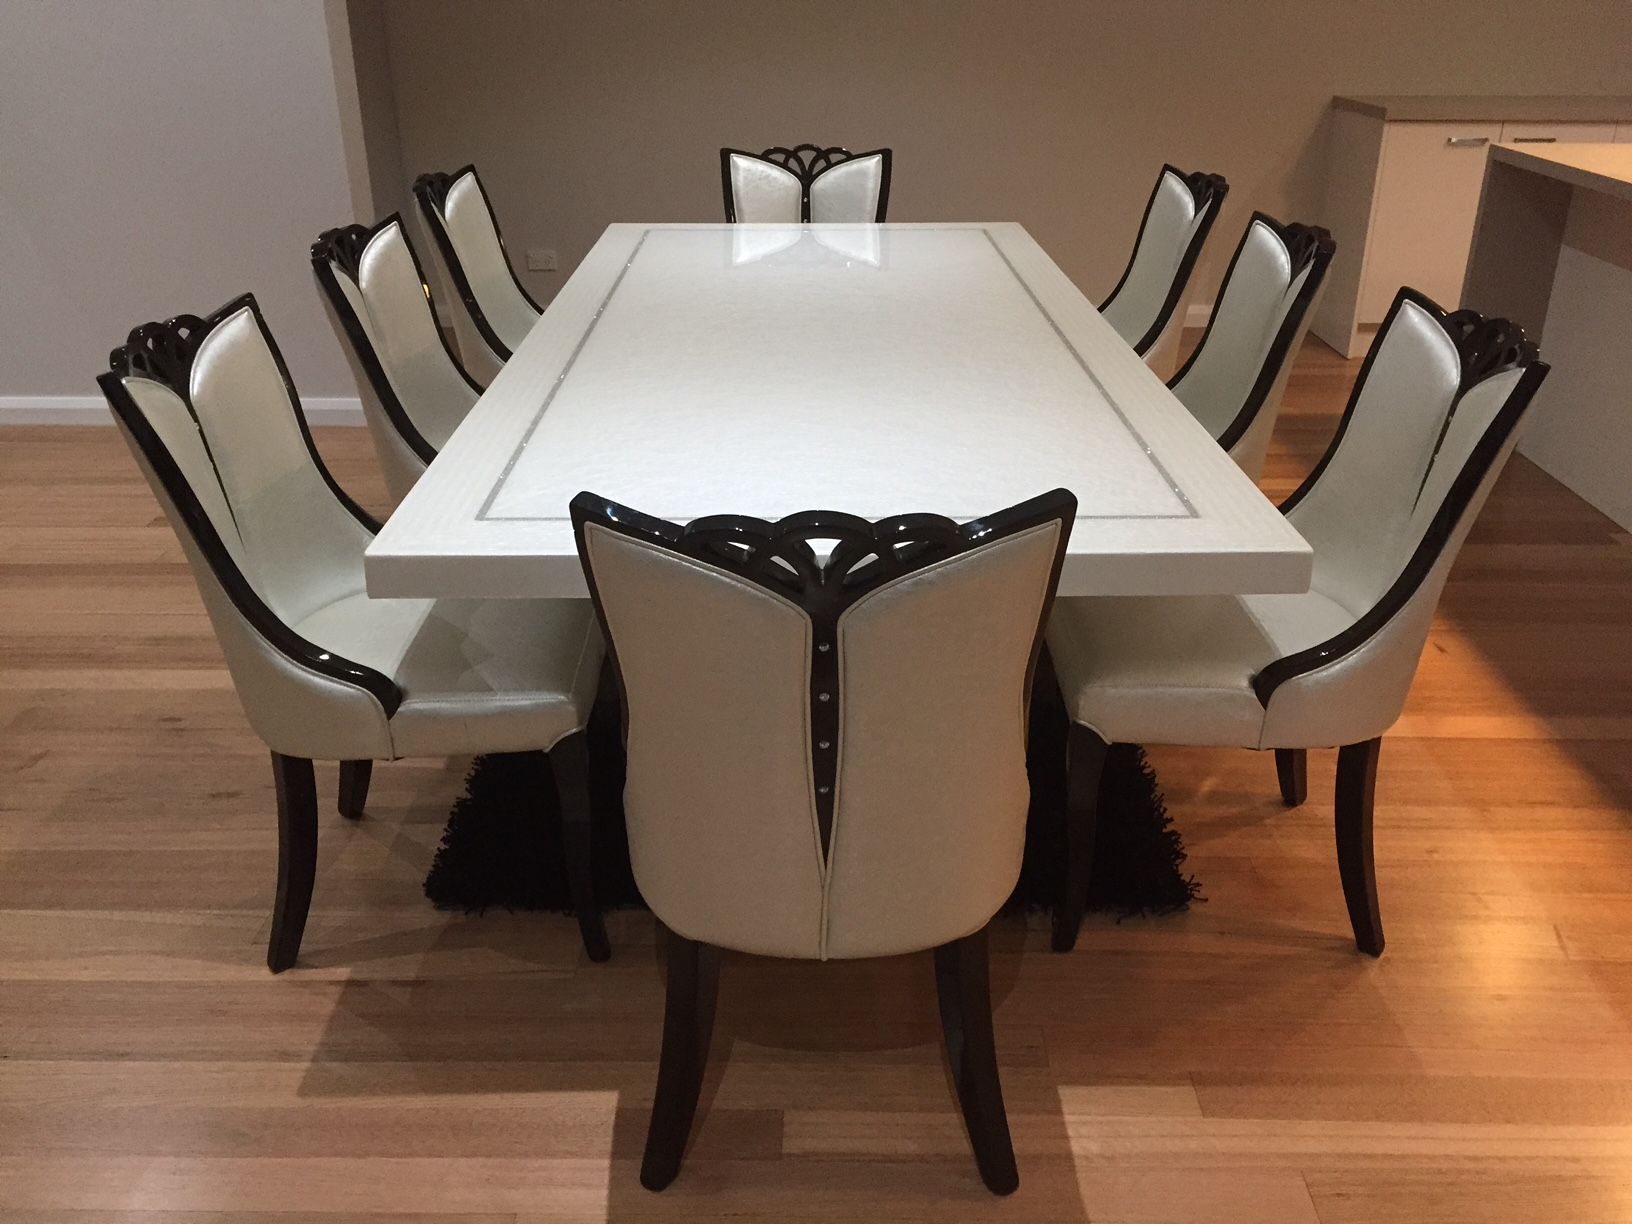 Dining Table 8 Chairs Bianca Marble Dining Table With 8 Chairs